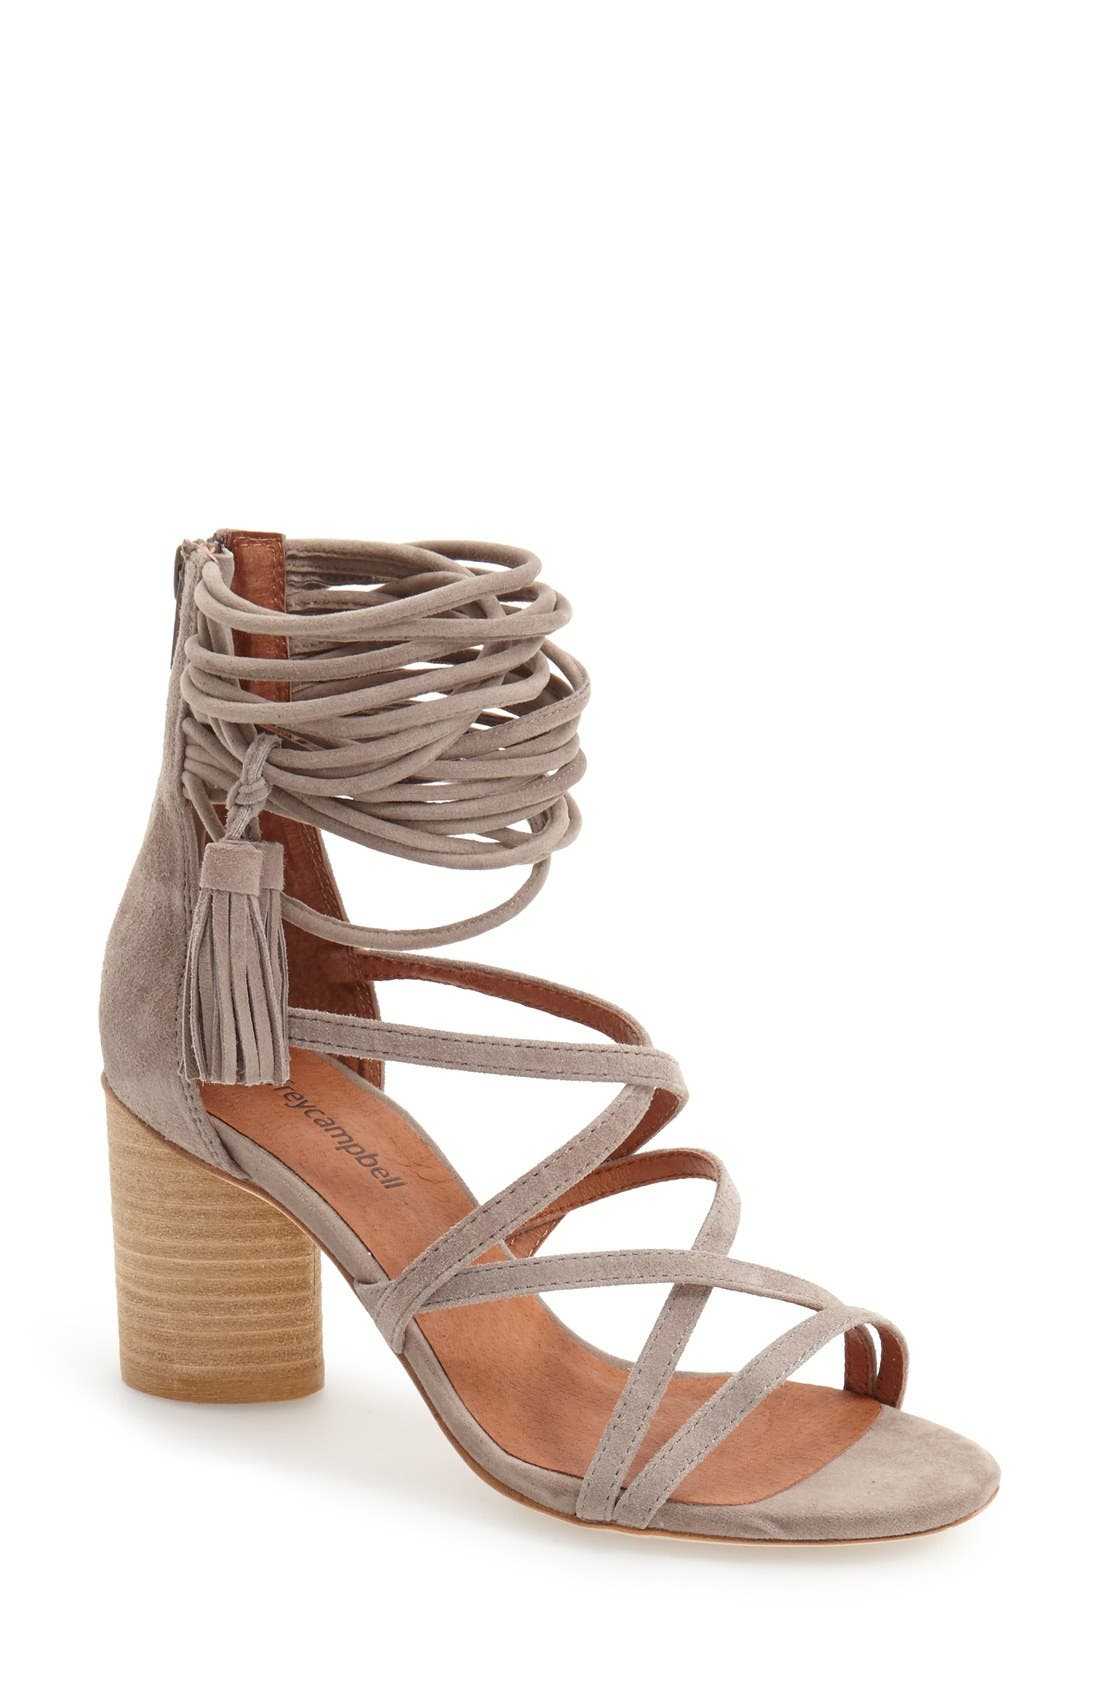 Main Image - Jeffrey Campbell 'Despina' Strappy Sandal (Women)